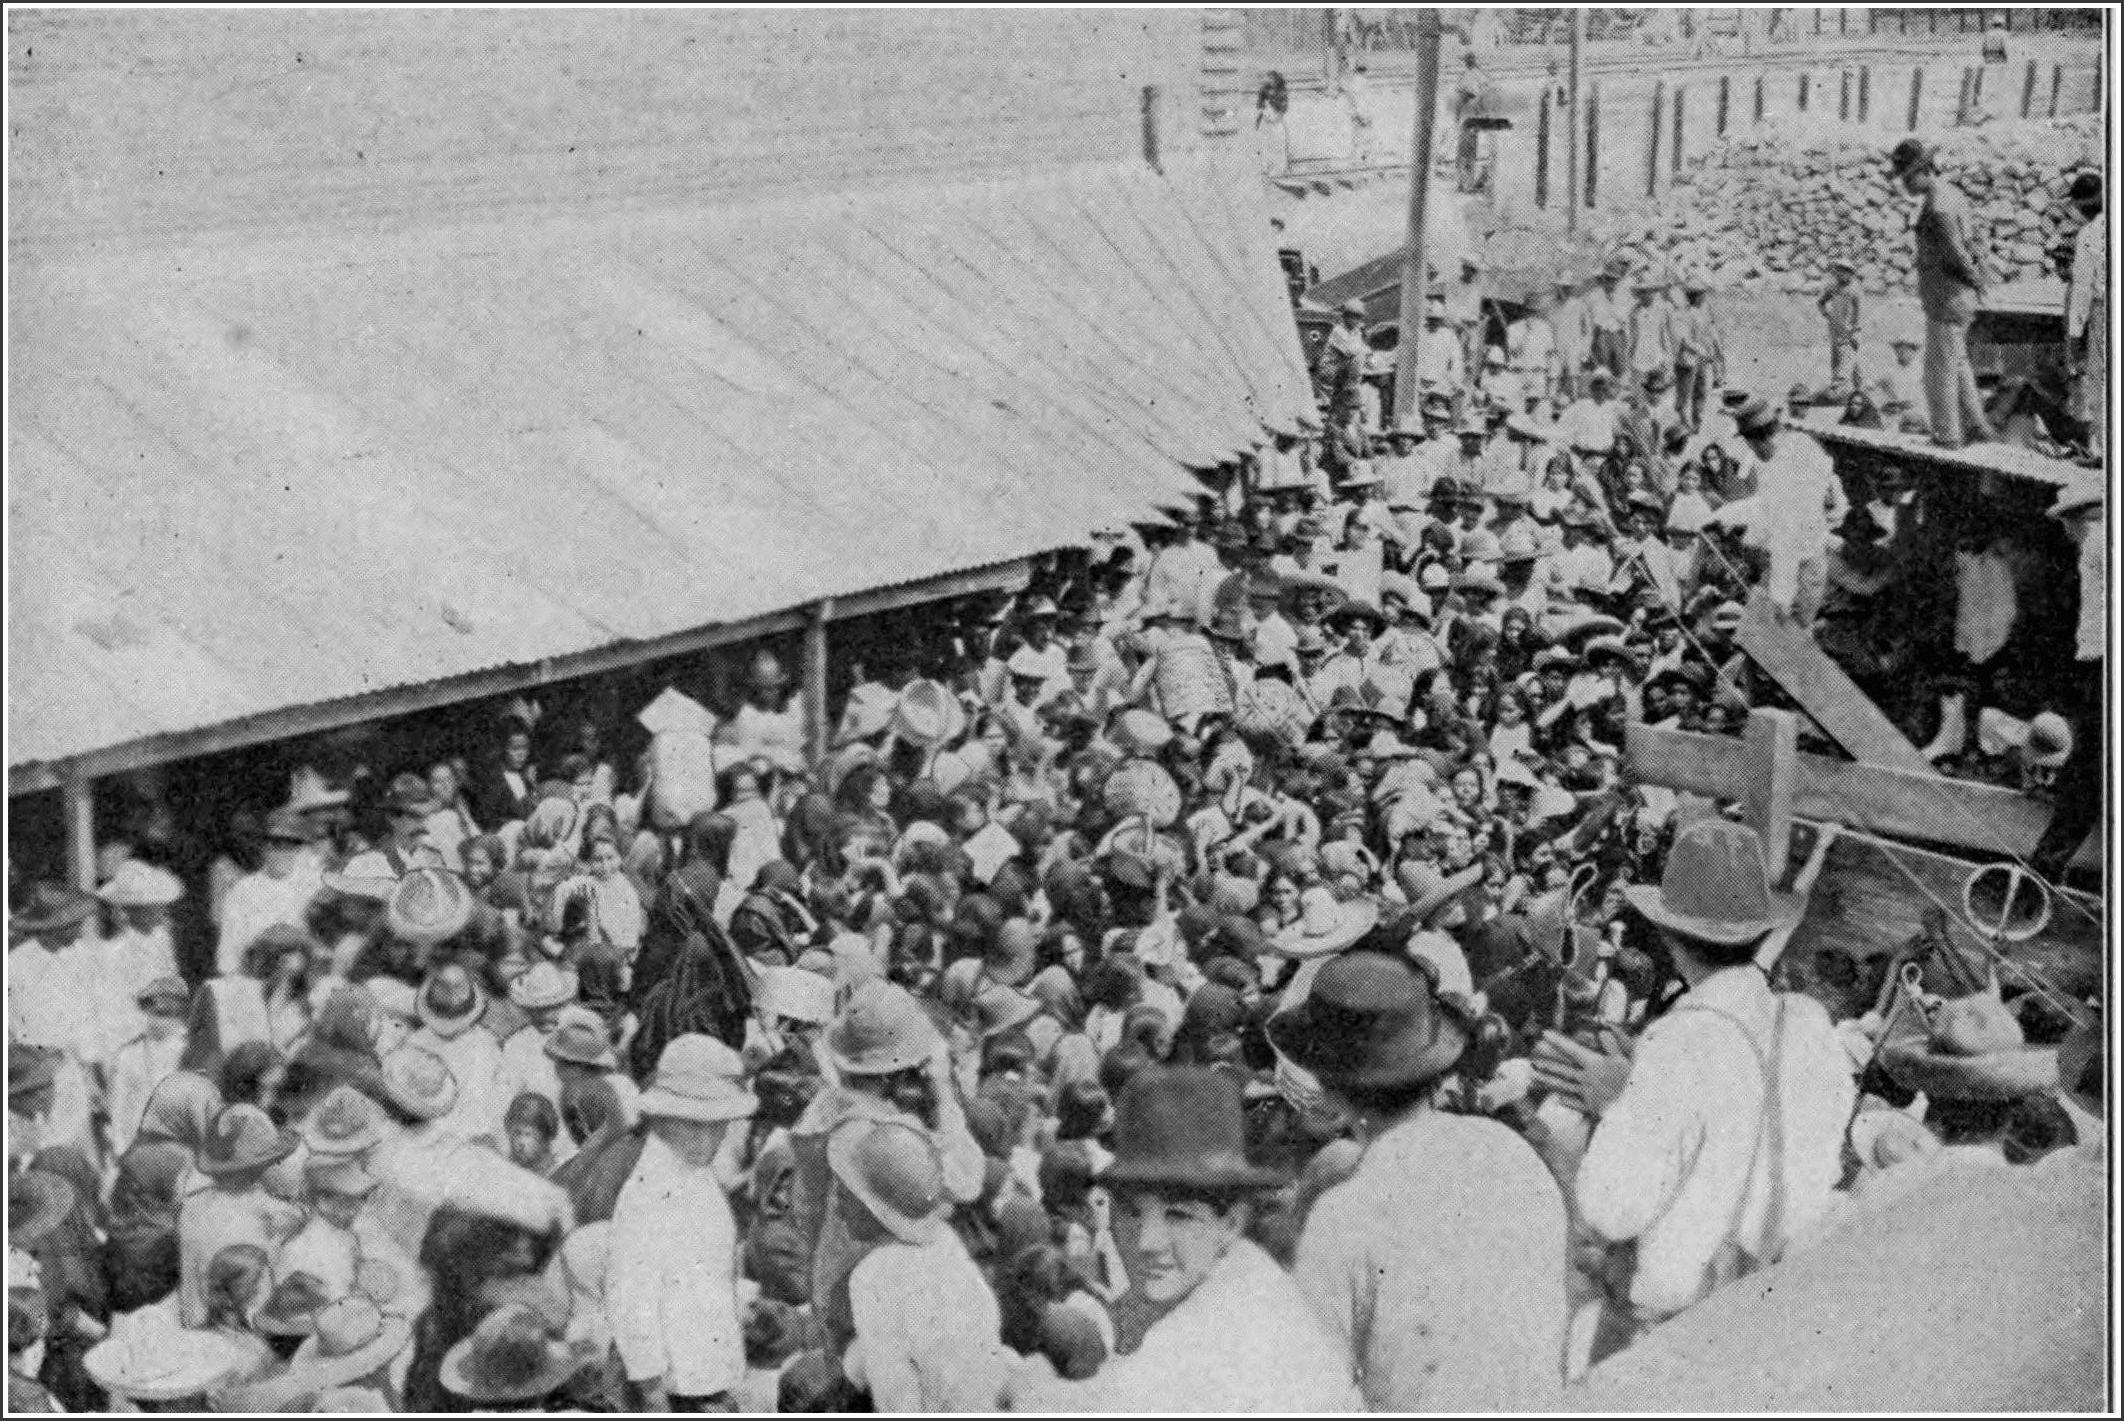 mexican problem through 1917 essay Read about the causes and outcome of the mexican revolution that was initiated  mexico went through great political and  in 1917 carranza formed a new .